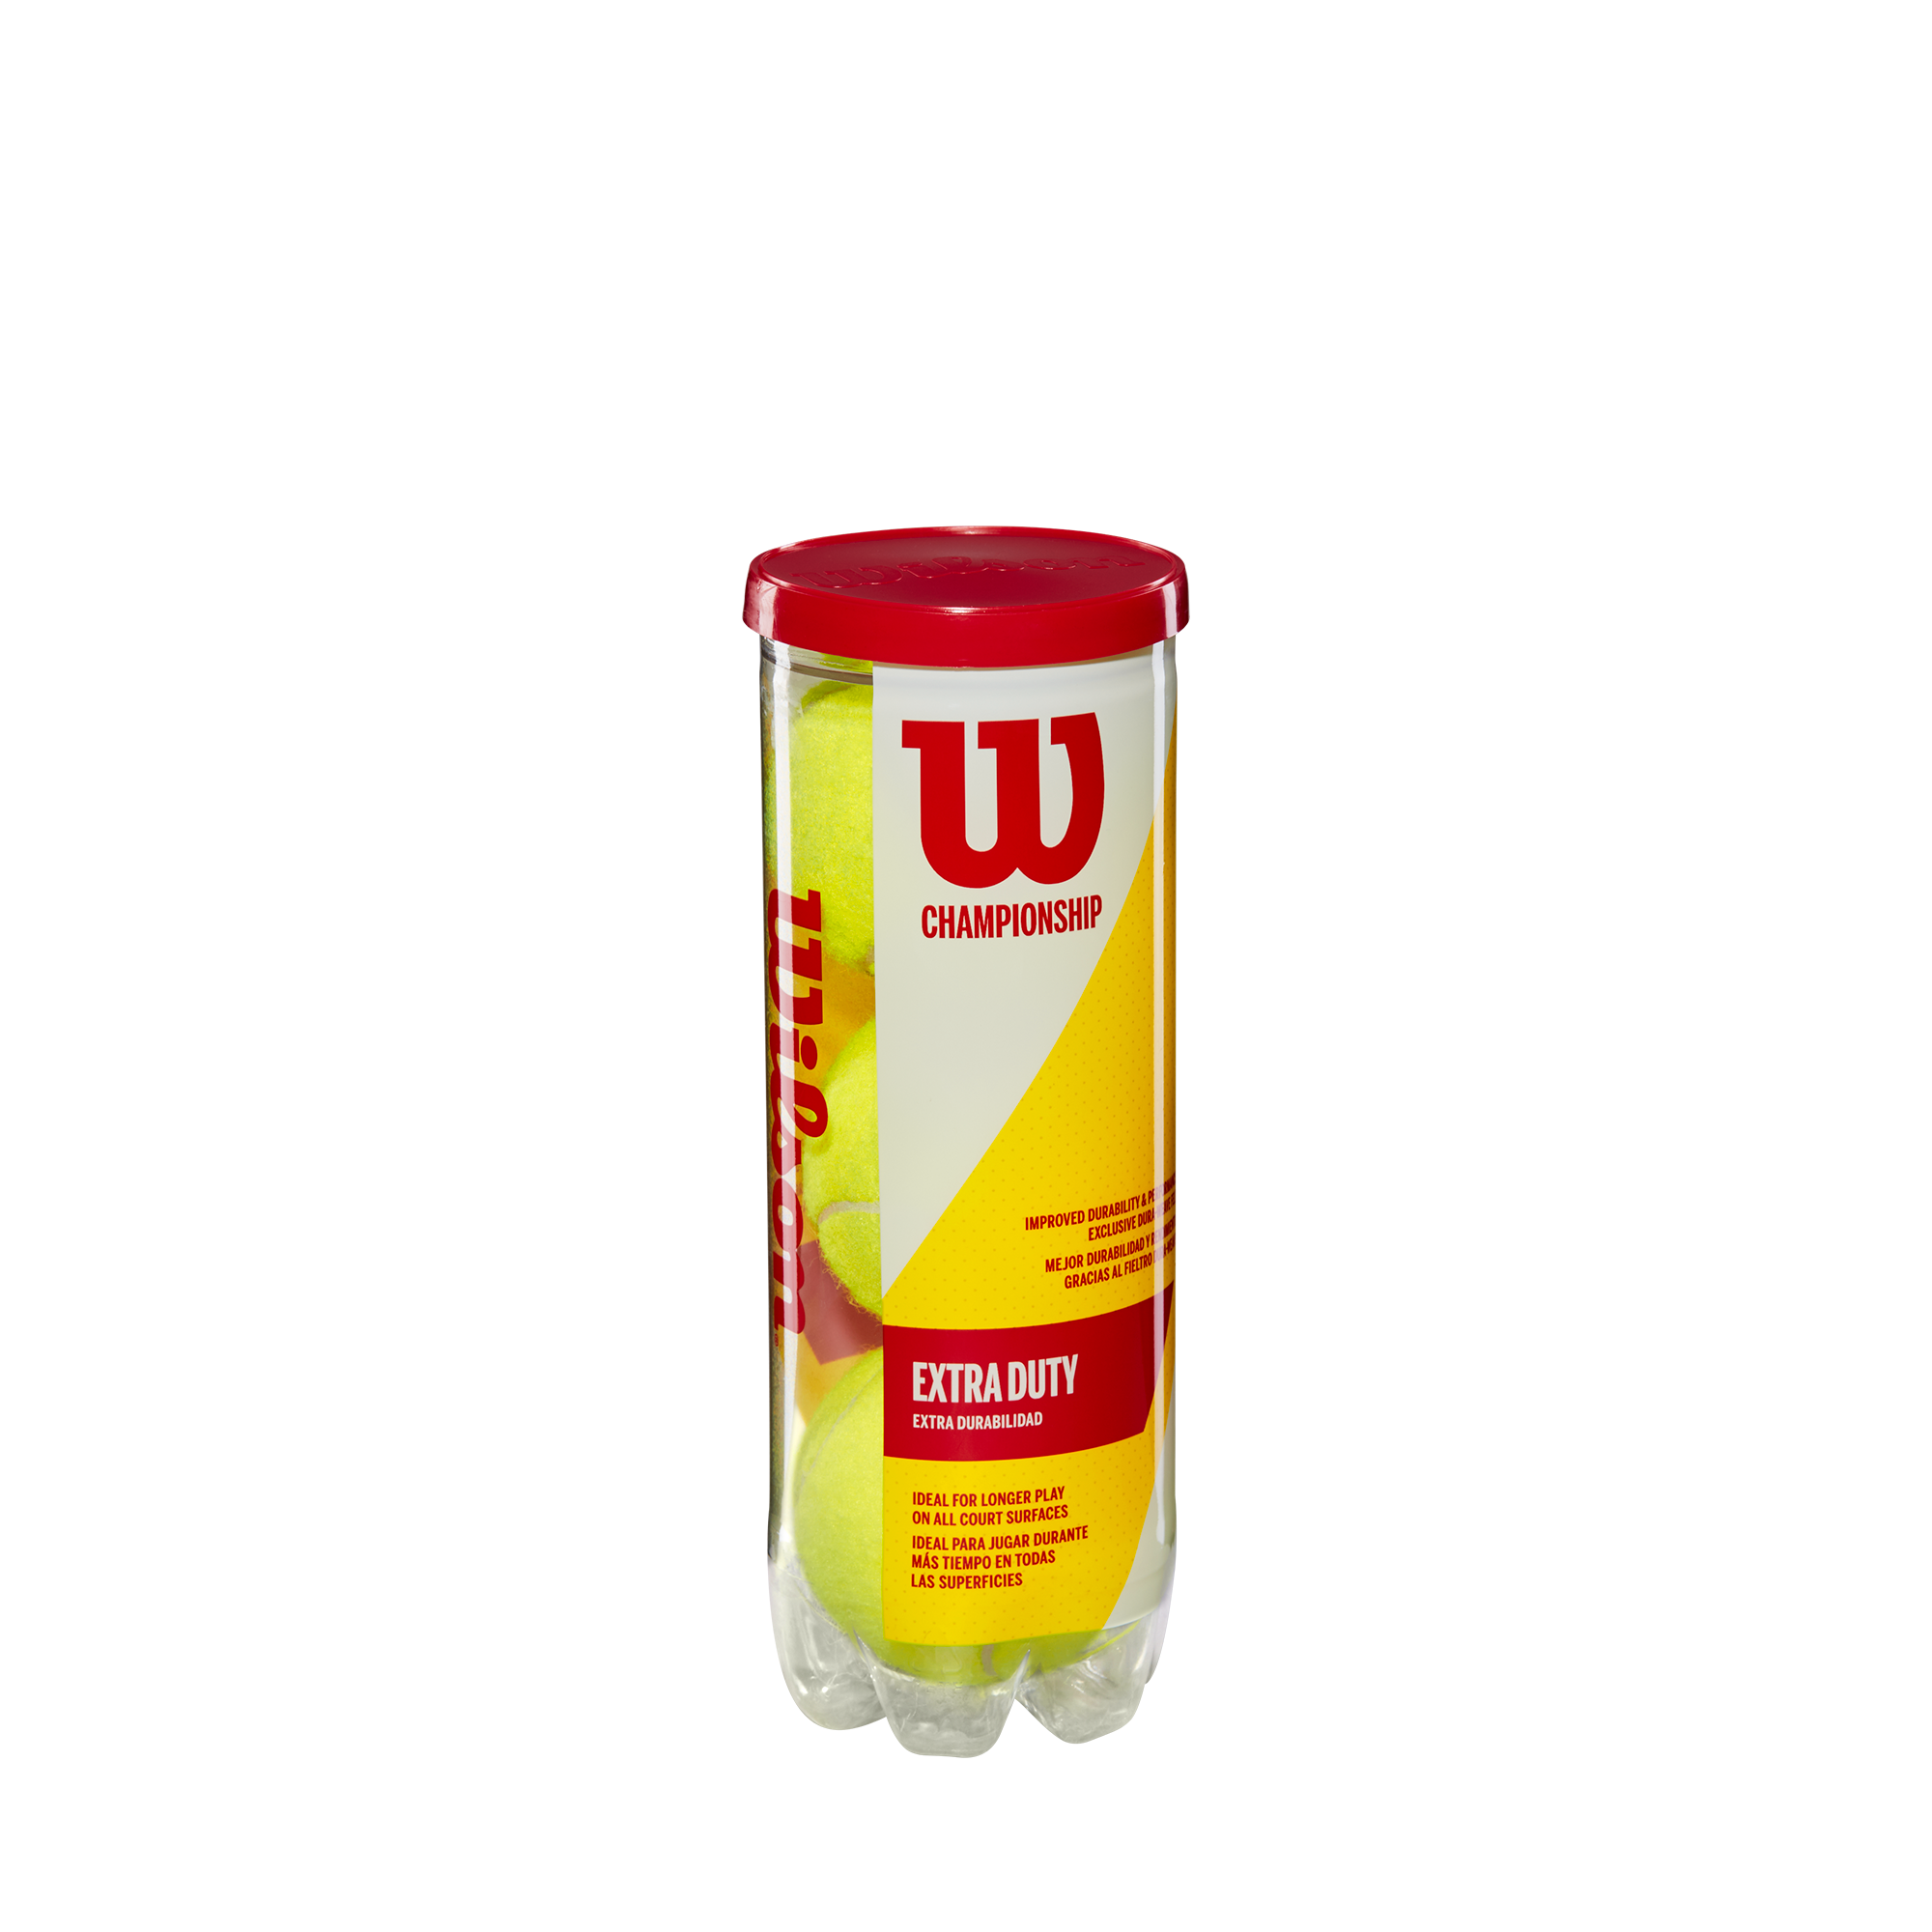 WILSON CHAMPIONSHIP XTRA-DUTY TENNIS CASE | 24 cans | 72 balls